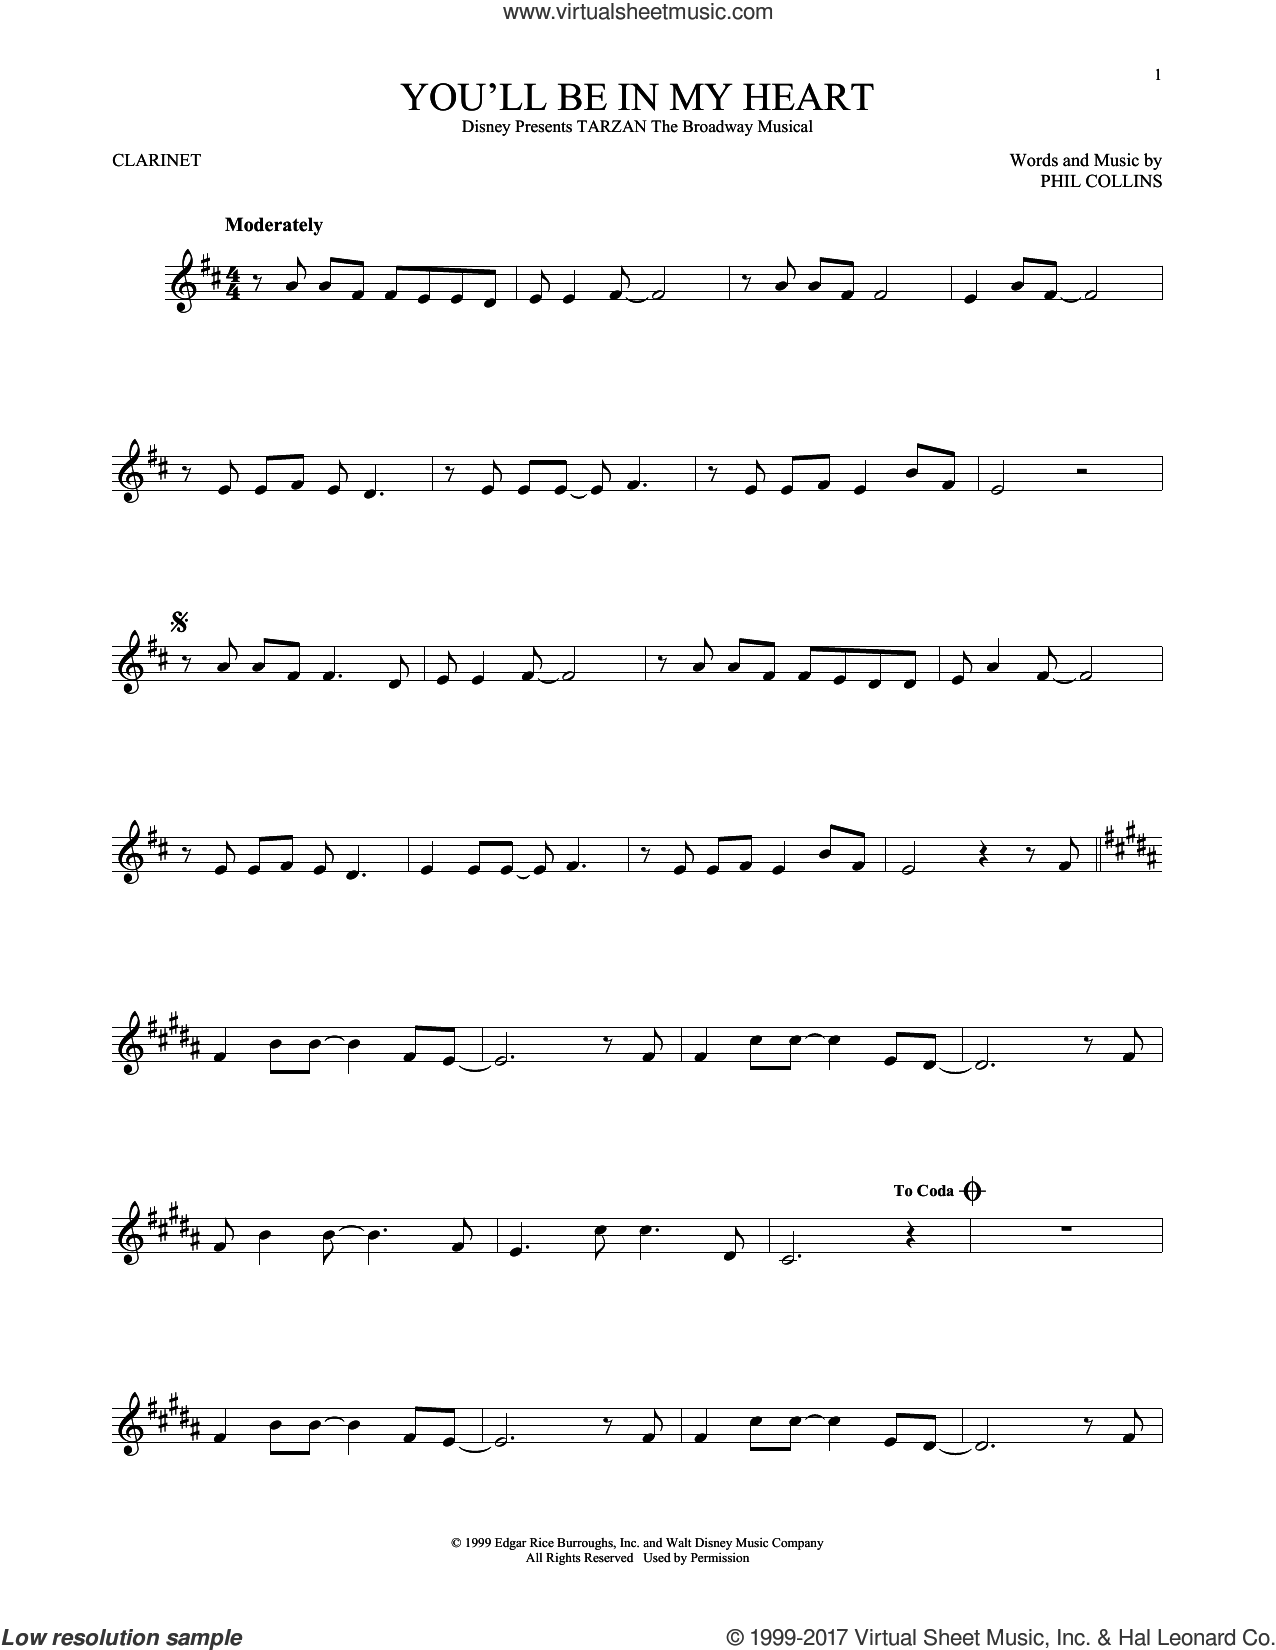 You'll Be In My Heart sheet music for clarinet solo by Phil Collins, intermediate skill level